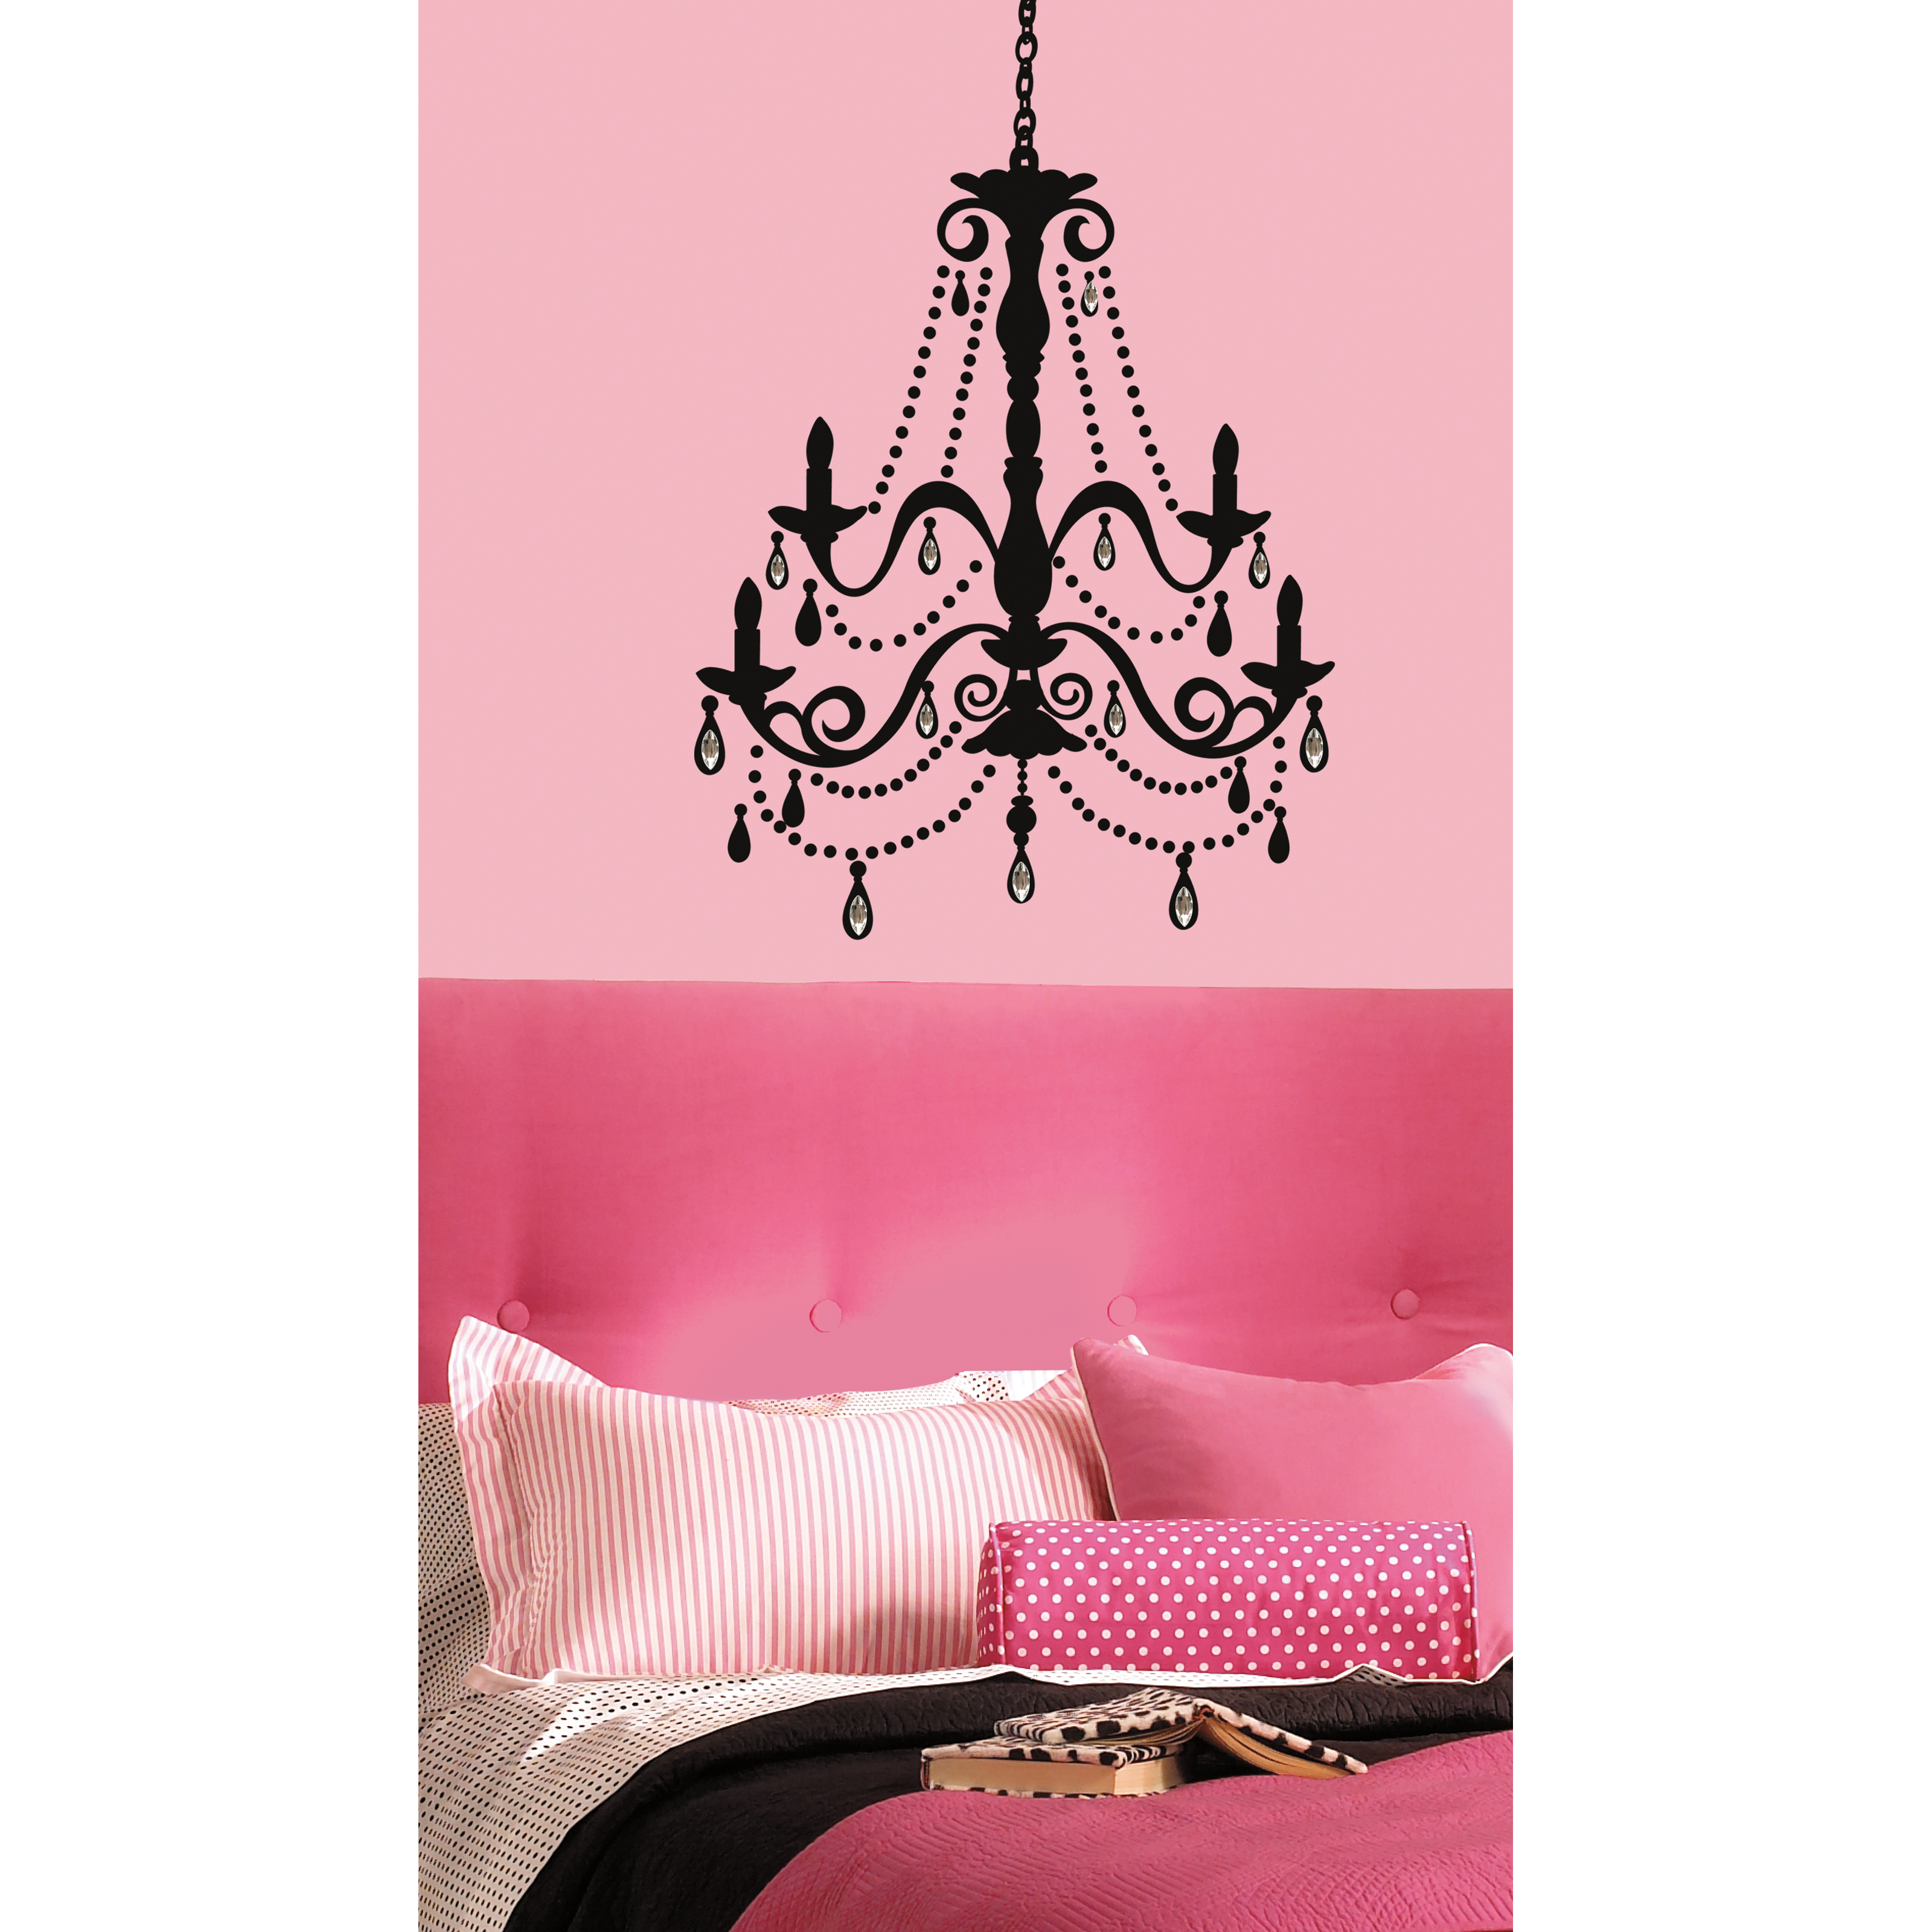 Chandelier with Gems Removable Giant Wall Decal - 25W x 36H in.